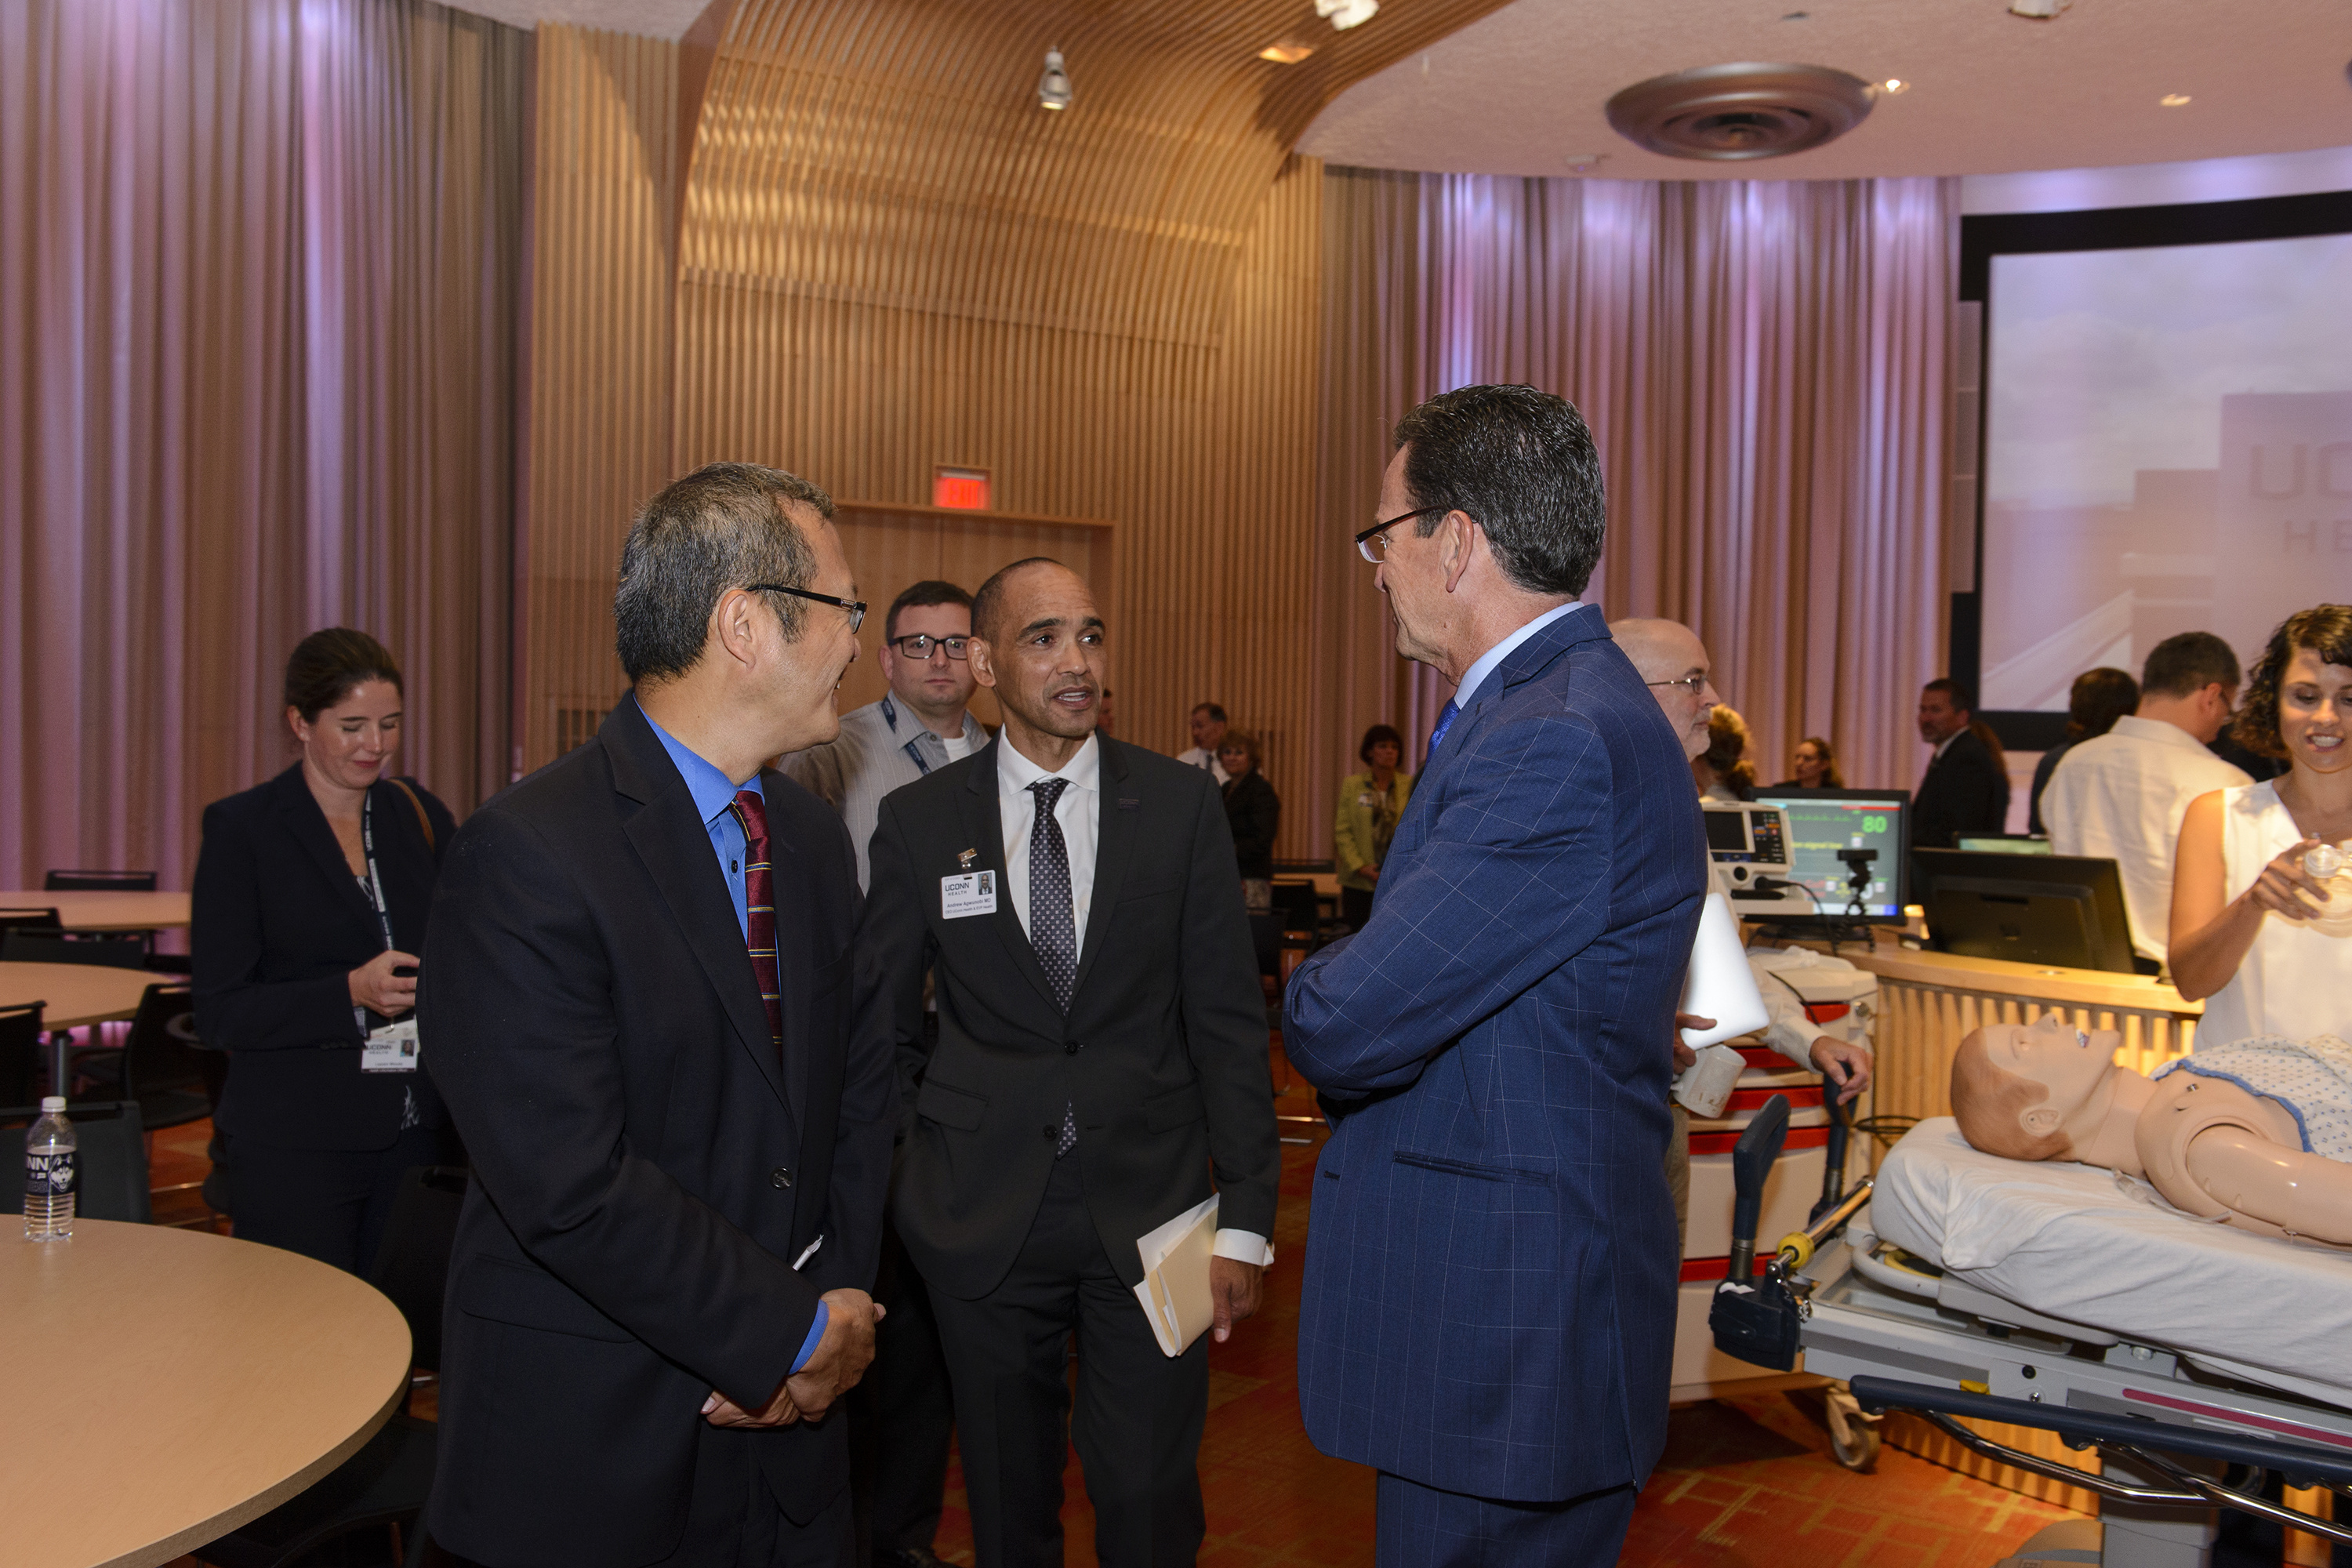 Gov. Dannel P. Malloy, right, speaks with Dr. Bruce T. Liang, left, and Dr. Andrew Agwunobi, during a ceremony at UConn Health Thursday to celebrate the opening of new biotechnology research space as part of the Bioscience Connecticut initiative. (Janine Gelineau/UConn Health Photo)